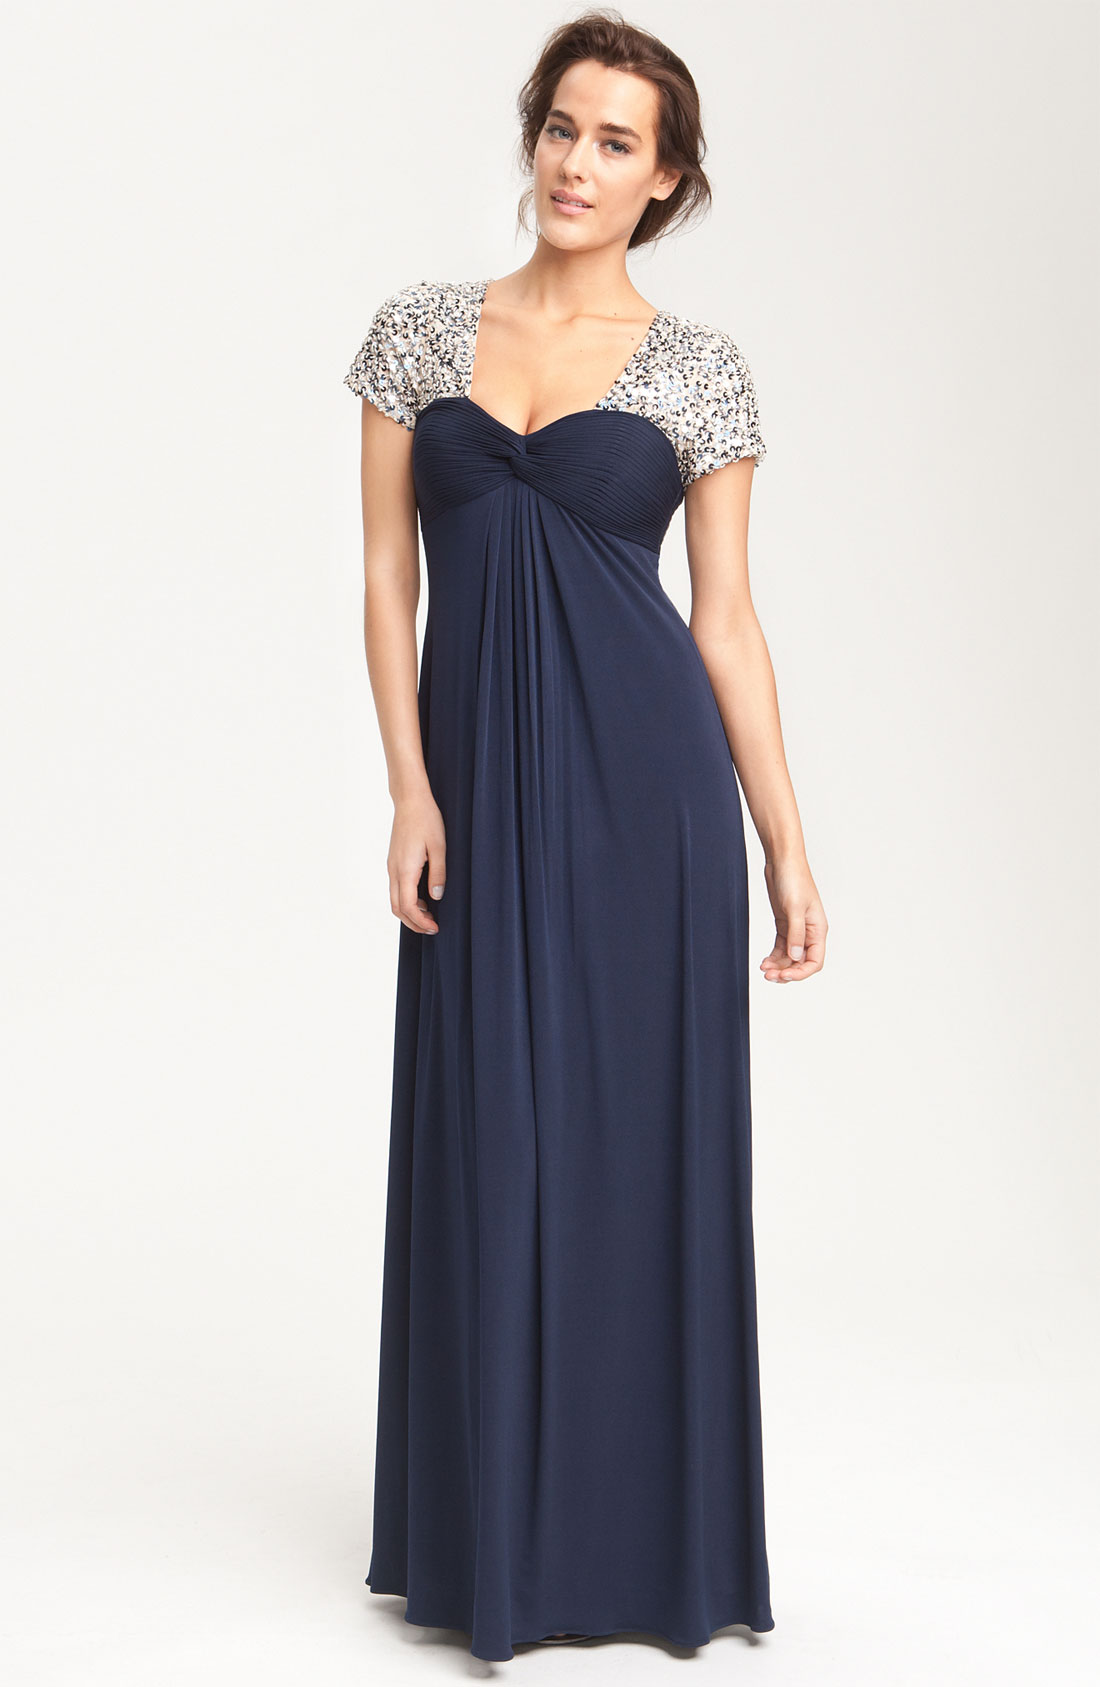 Lyst - Js boutique Sequin Trim Jersey Gown in Blue